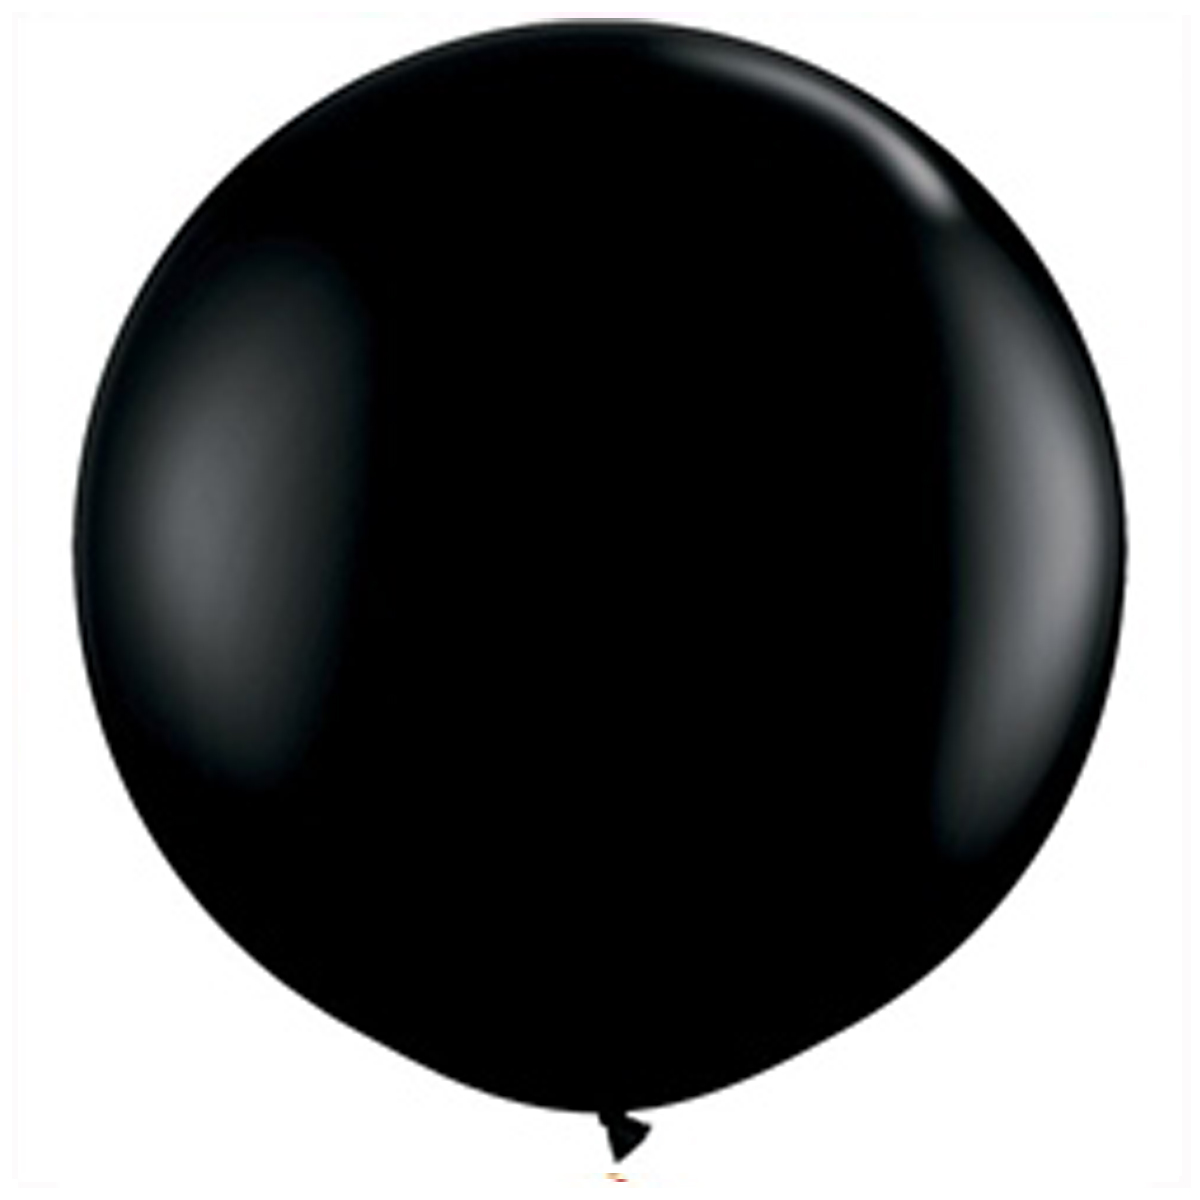 Five baby gender reveal confetti balloon 24 black balloons with